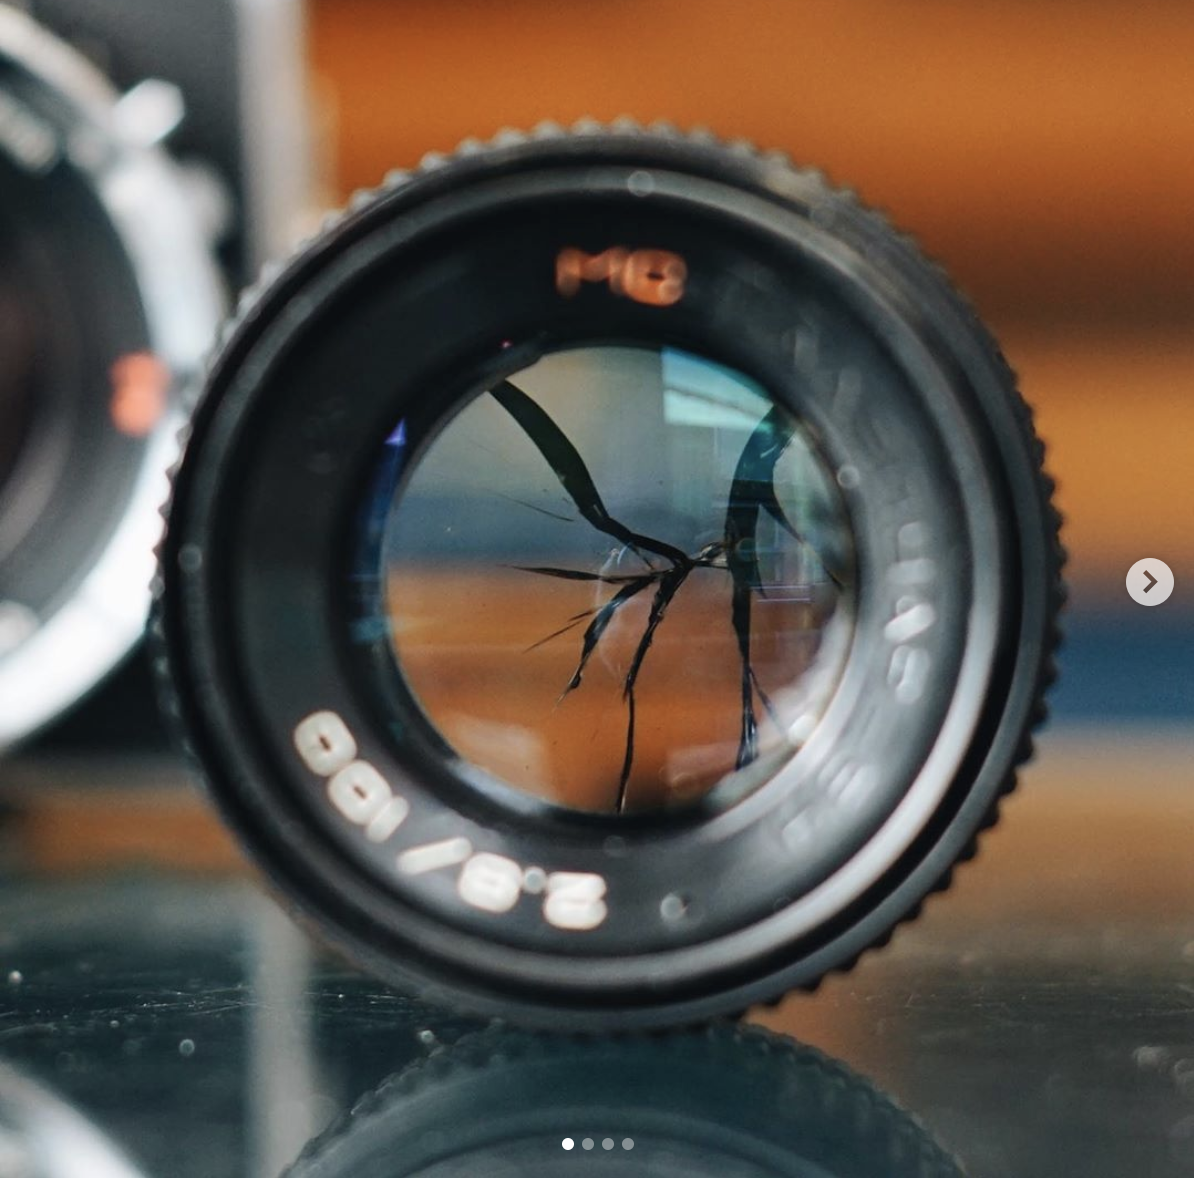 Kaleinar lens with broken element